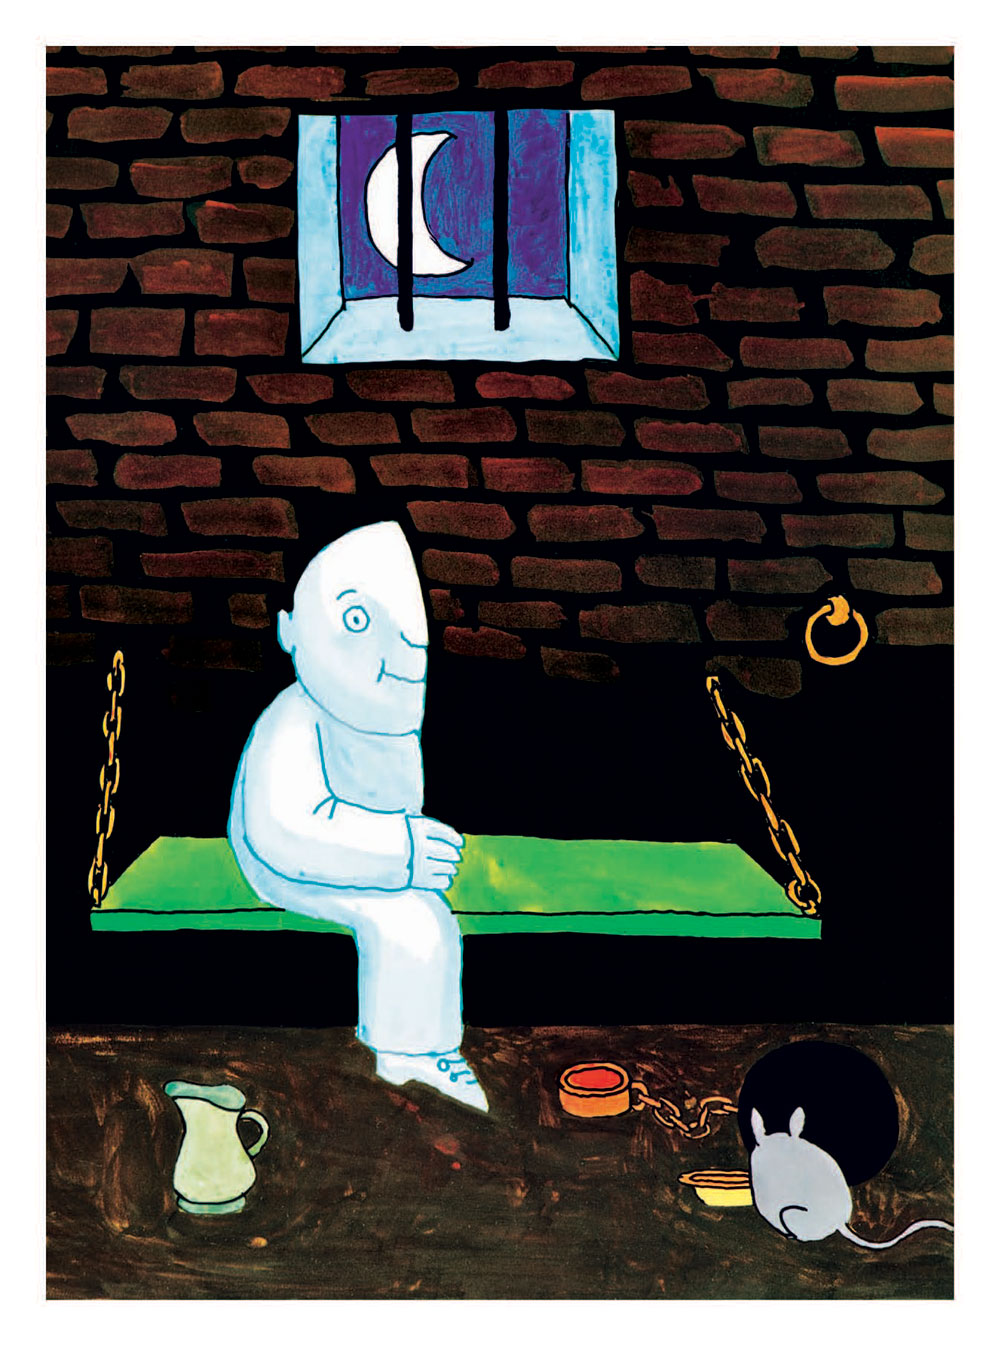 From Moon Man, as published in Tomi Ungerer: A Treasury of 8 Books